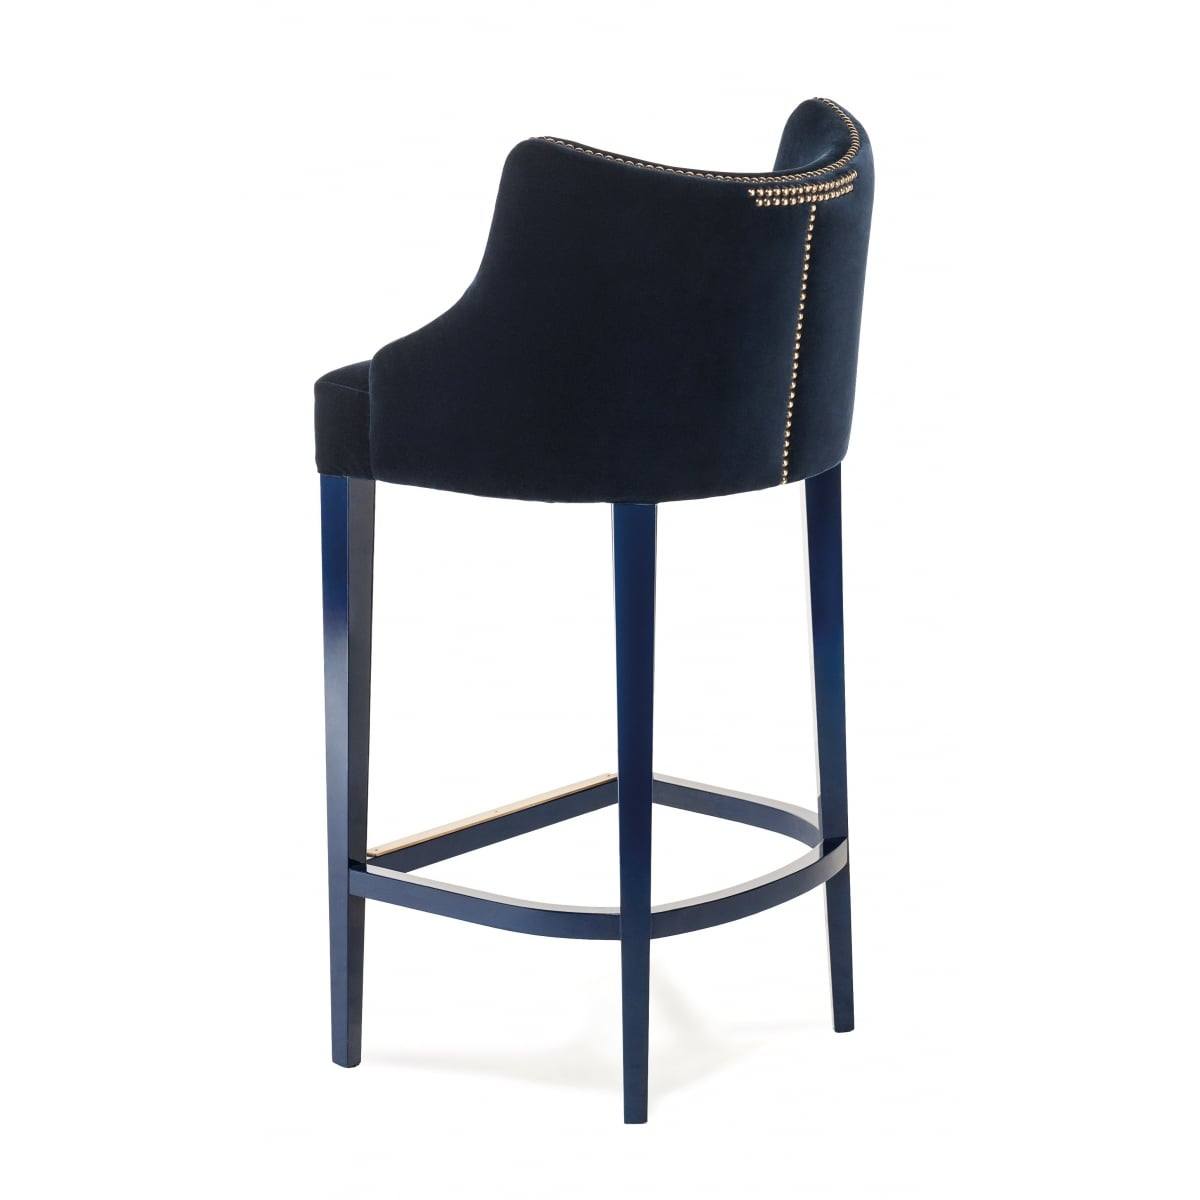 Designer Bar Stool Velvet Becomes Me Swanky Interiors